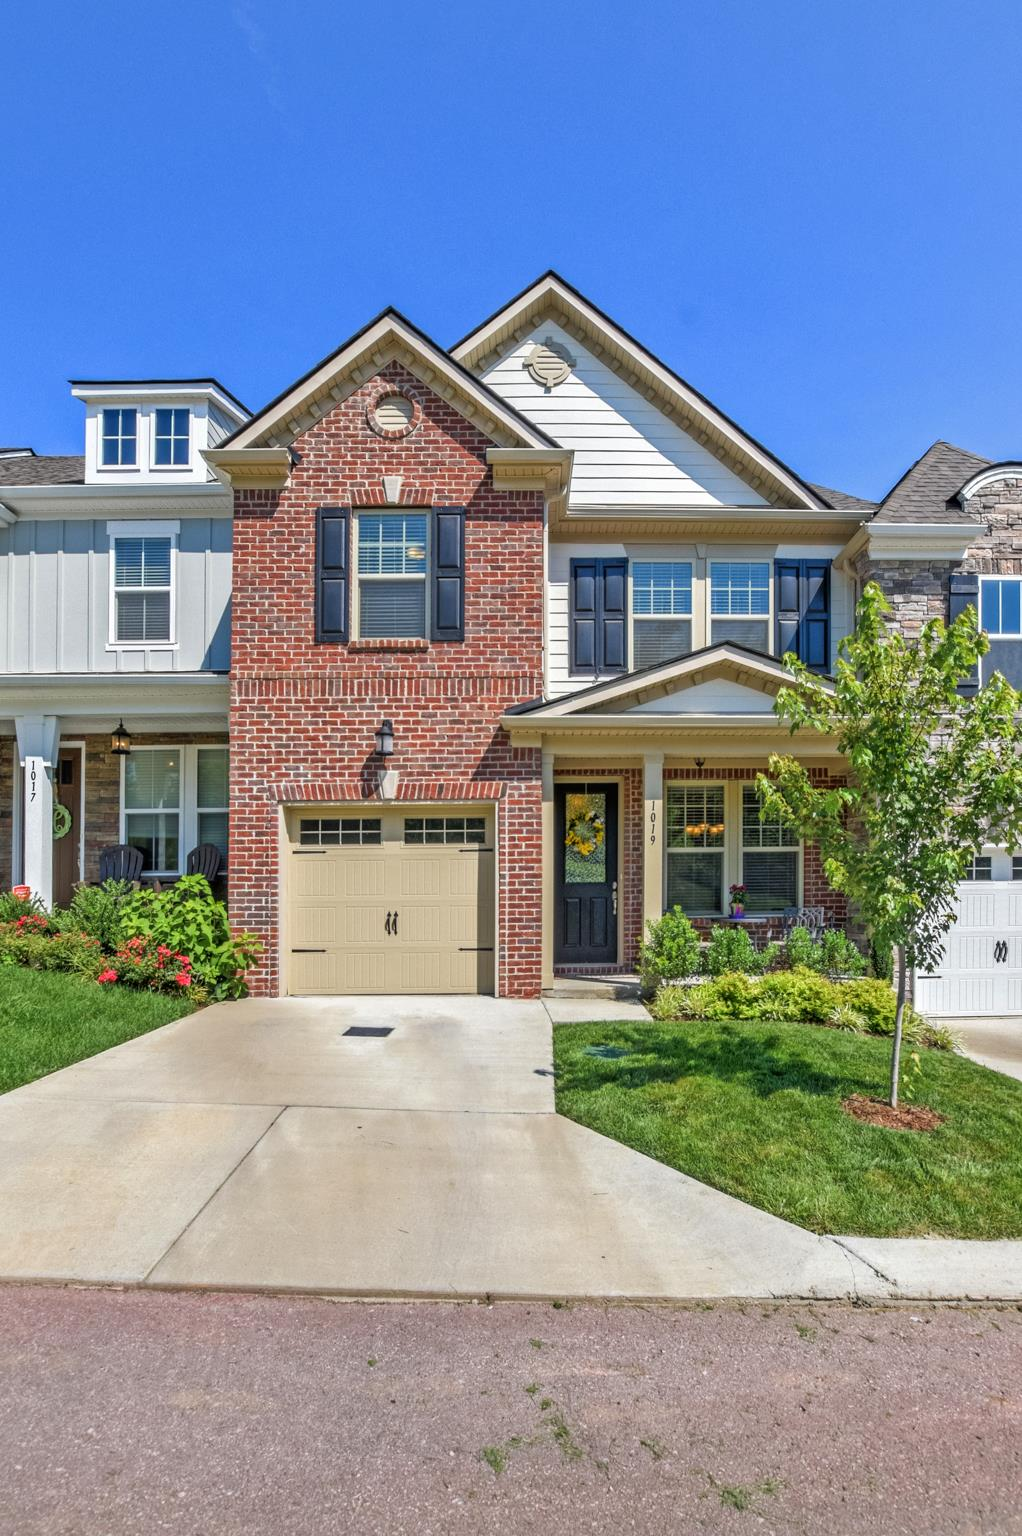 1019 Livingstone Ln, Mount Juliet, TN 37122